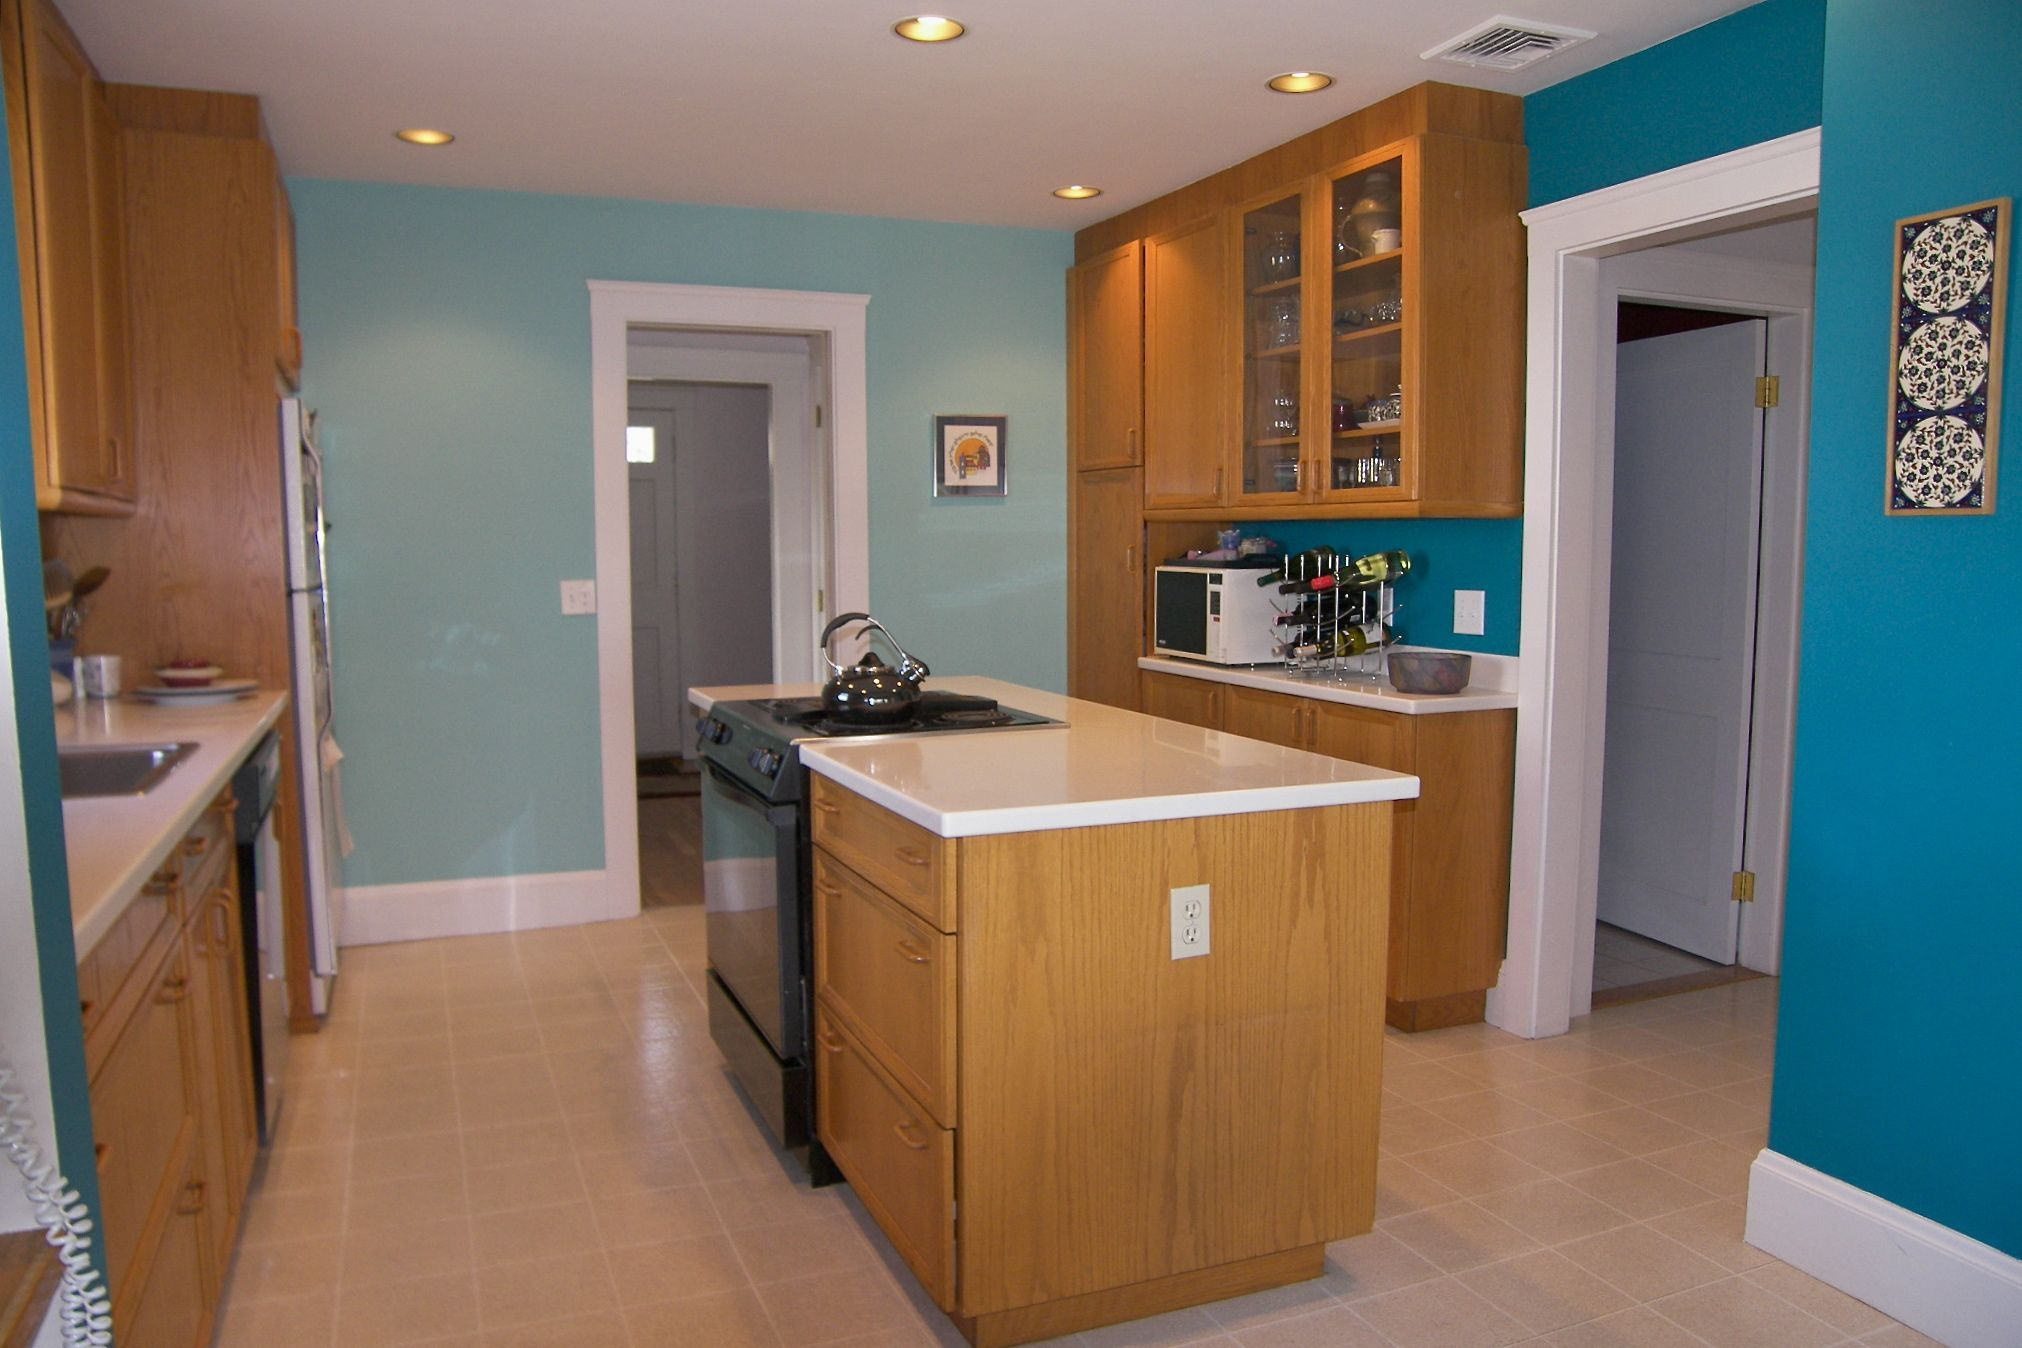 Colour For Kitchens Kitchen Colour Kitchen With A Cheerful Blue Color Scheme Kitchen